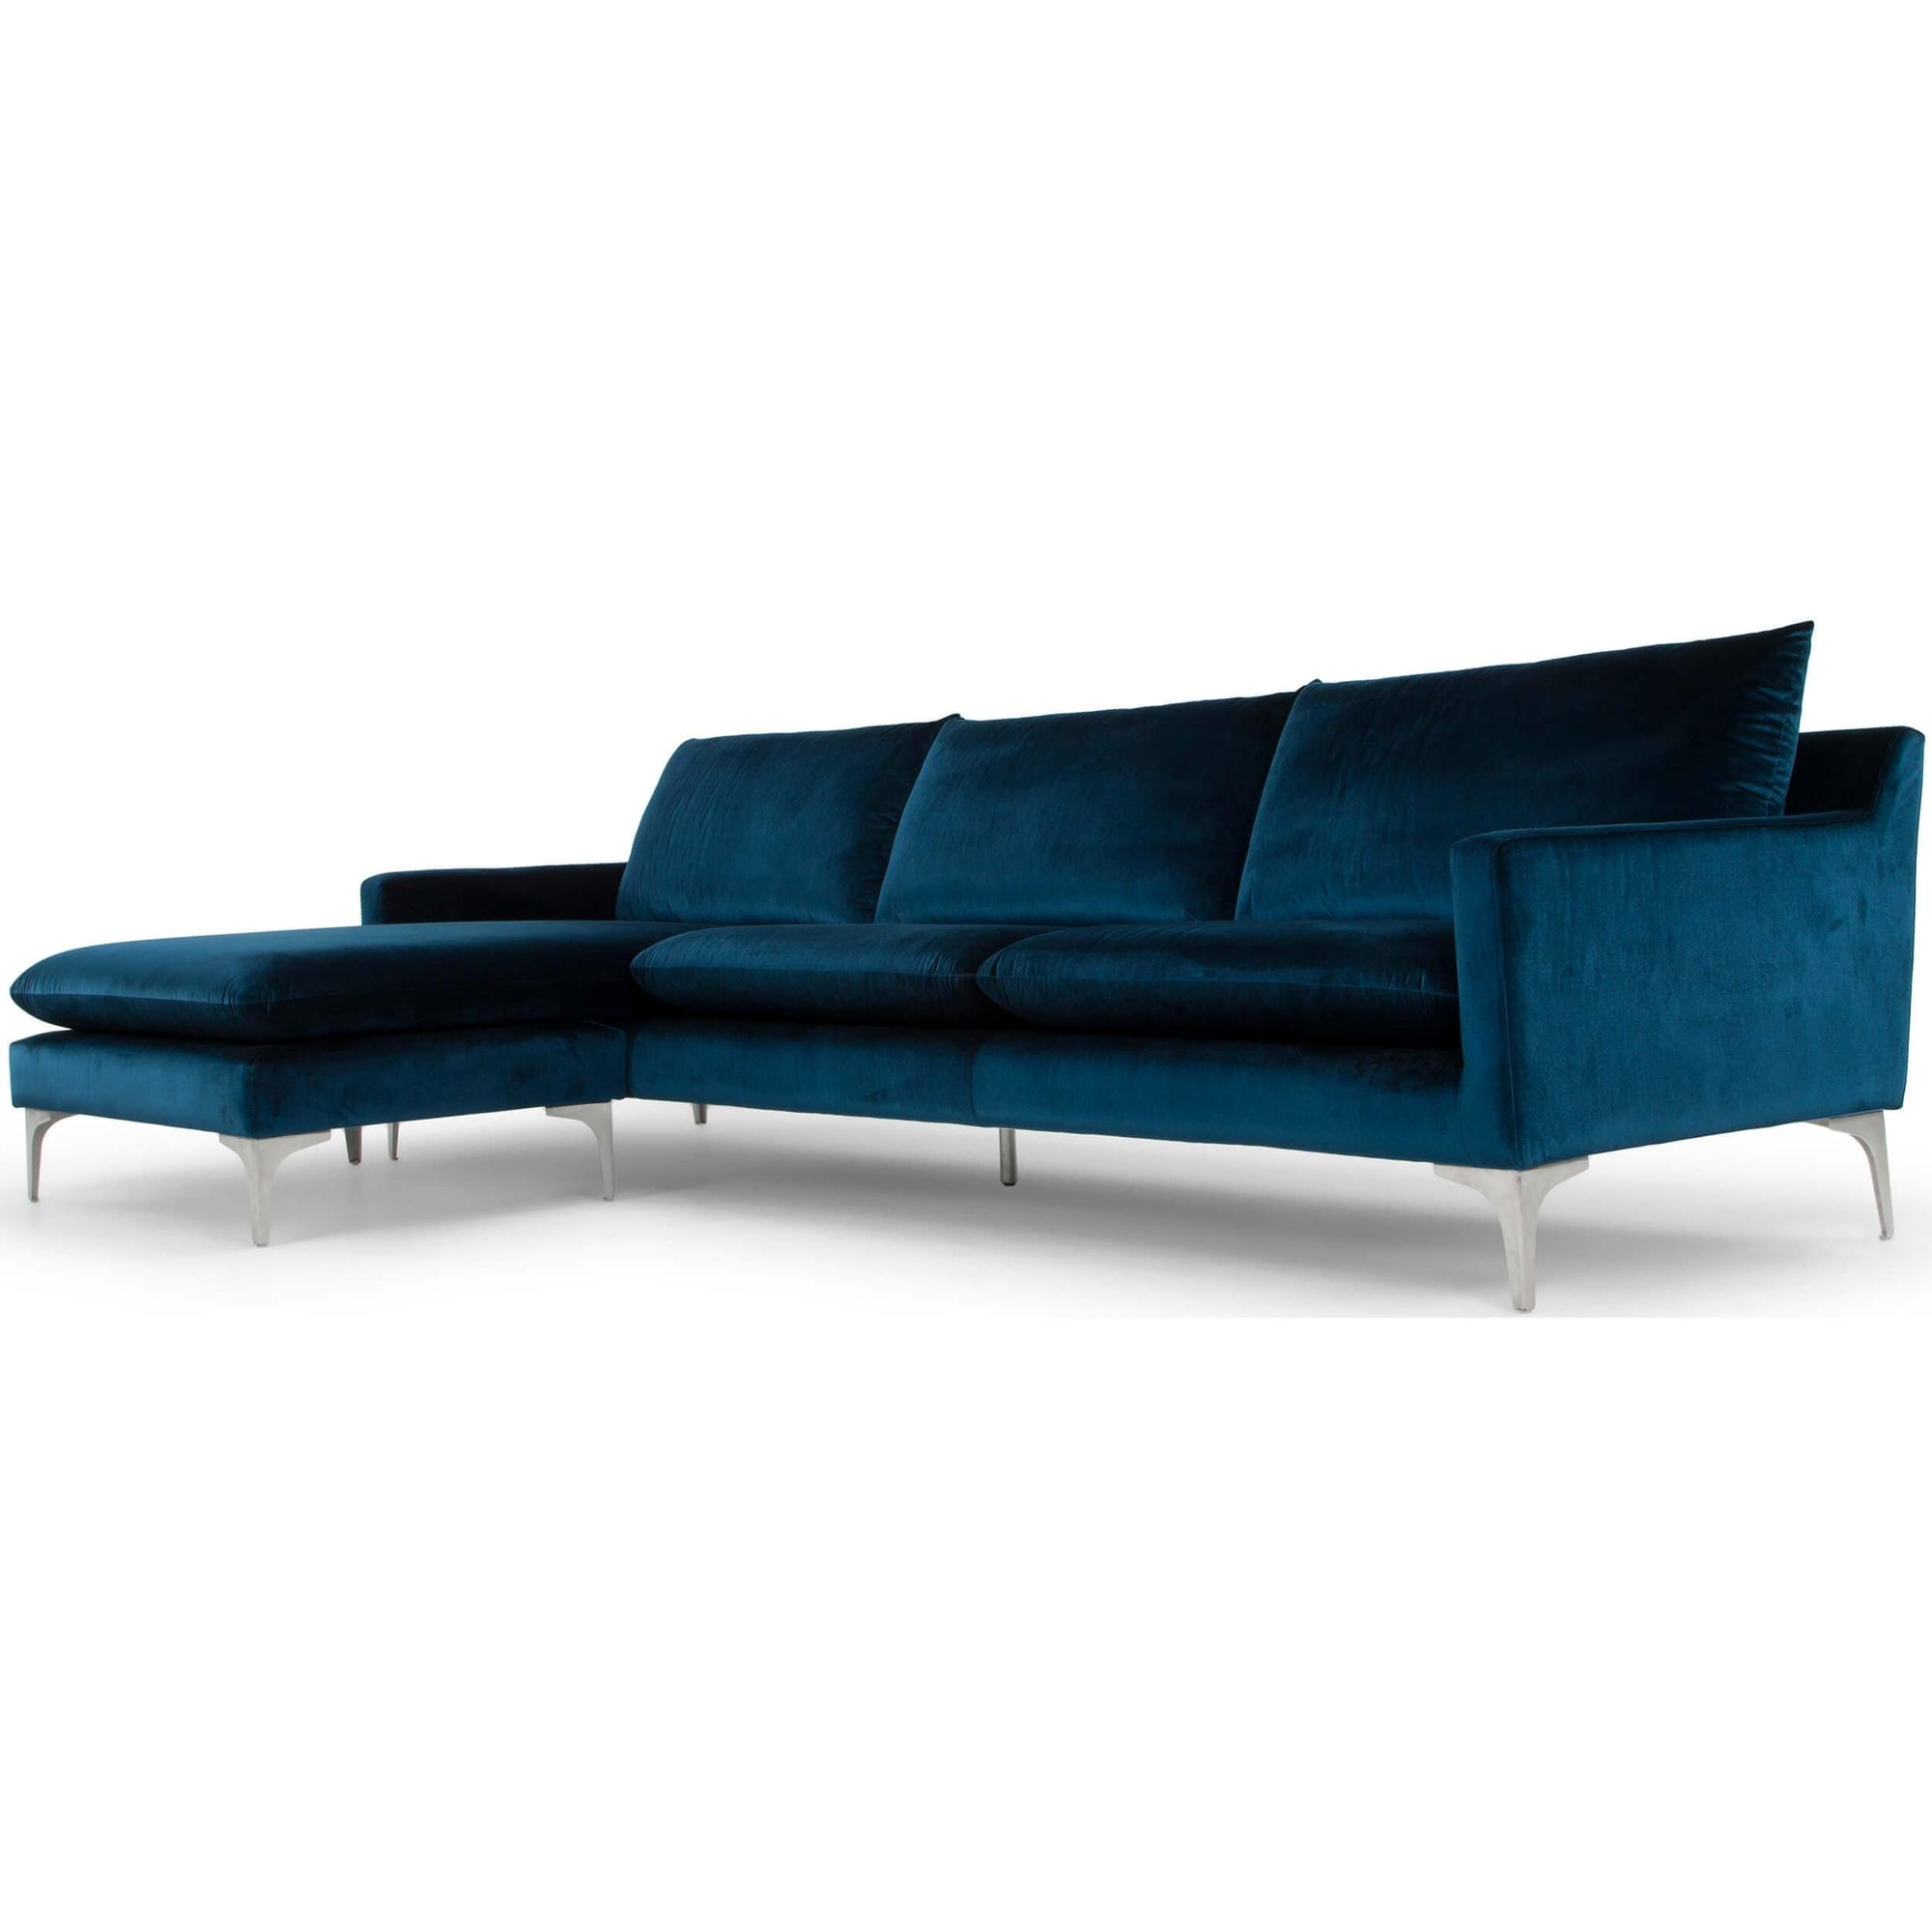 Terrific Anders Sectional Midnight Blue High Fashion Home Camellatalisay Diy Chair Ideas Camellatalisaycom